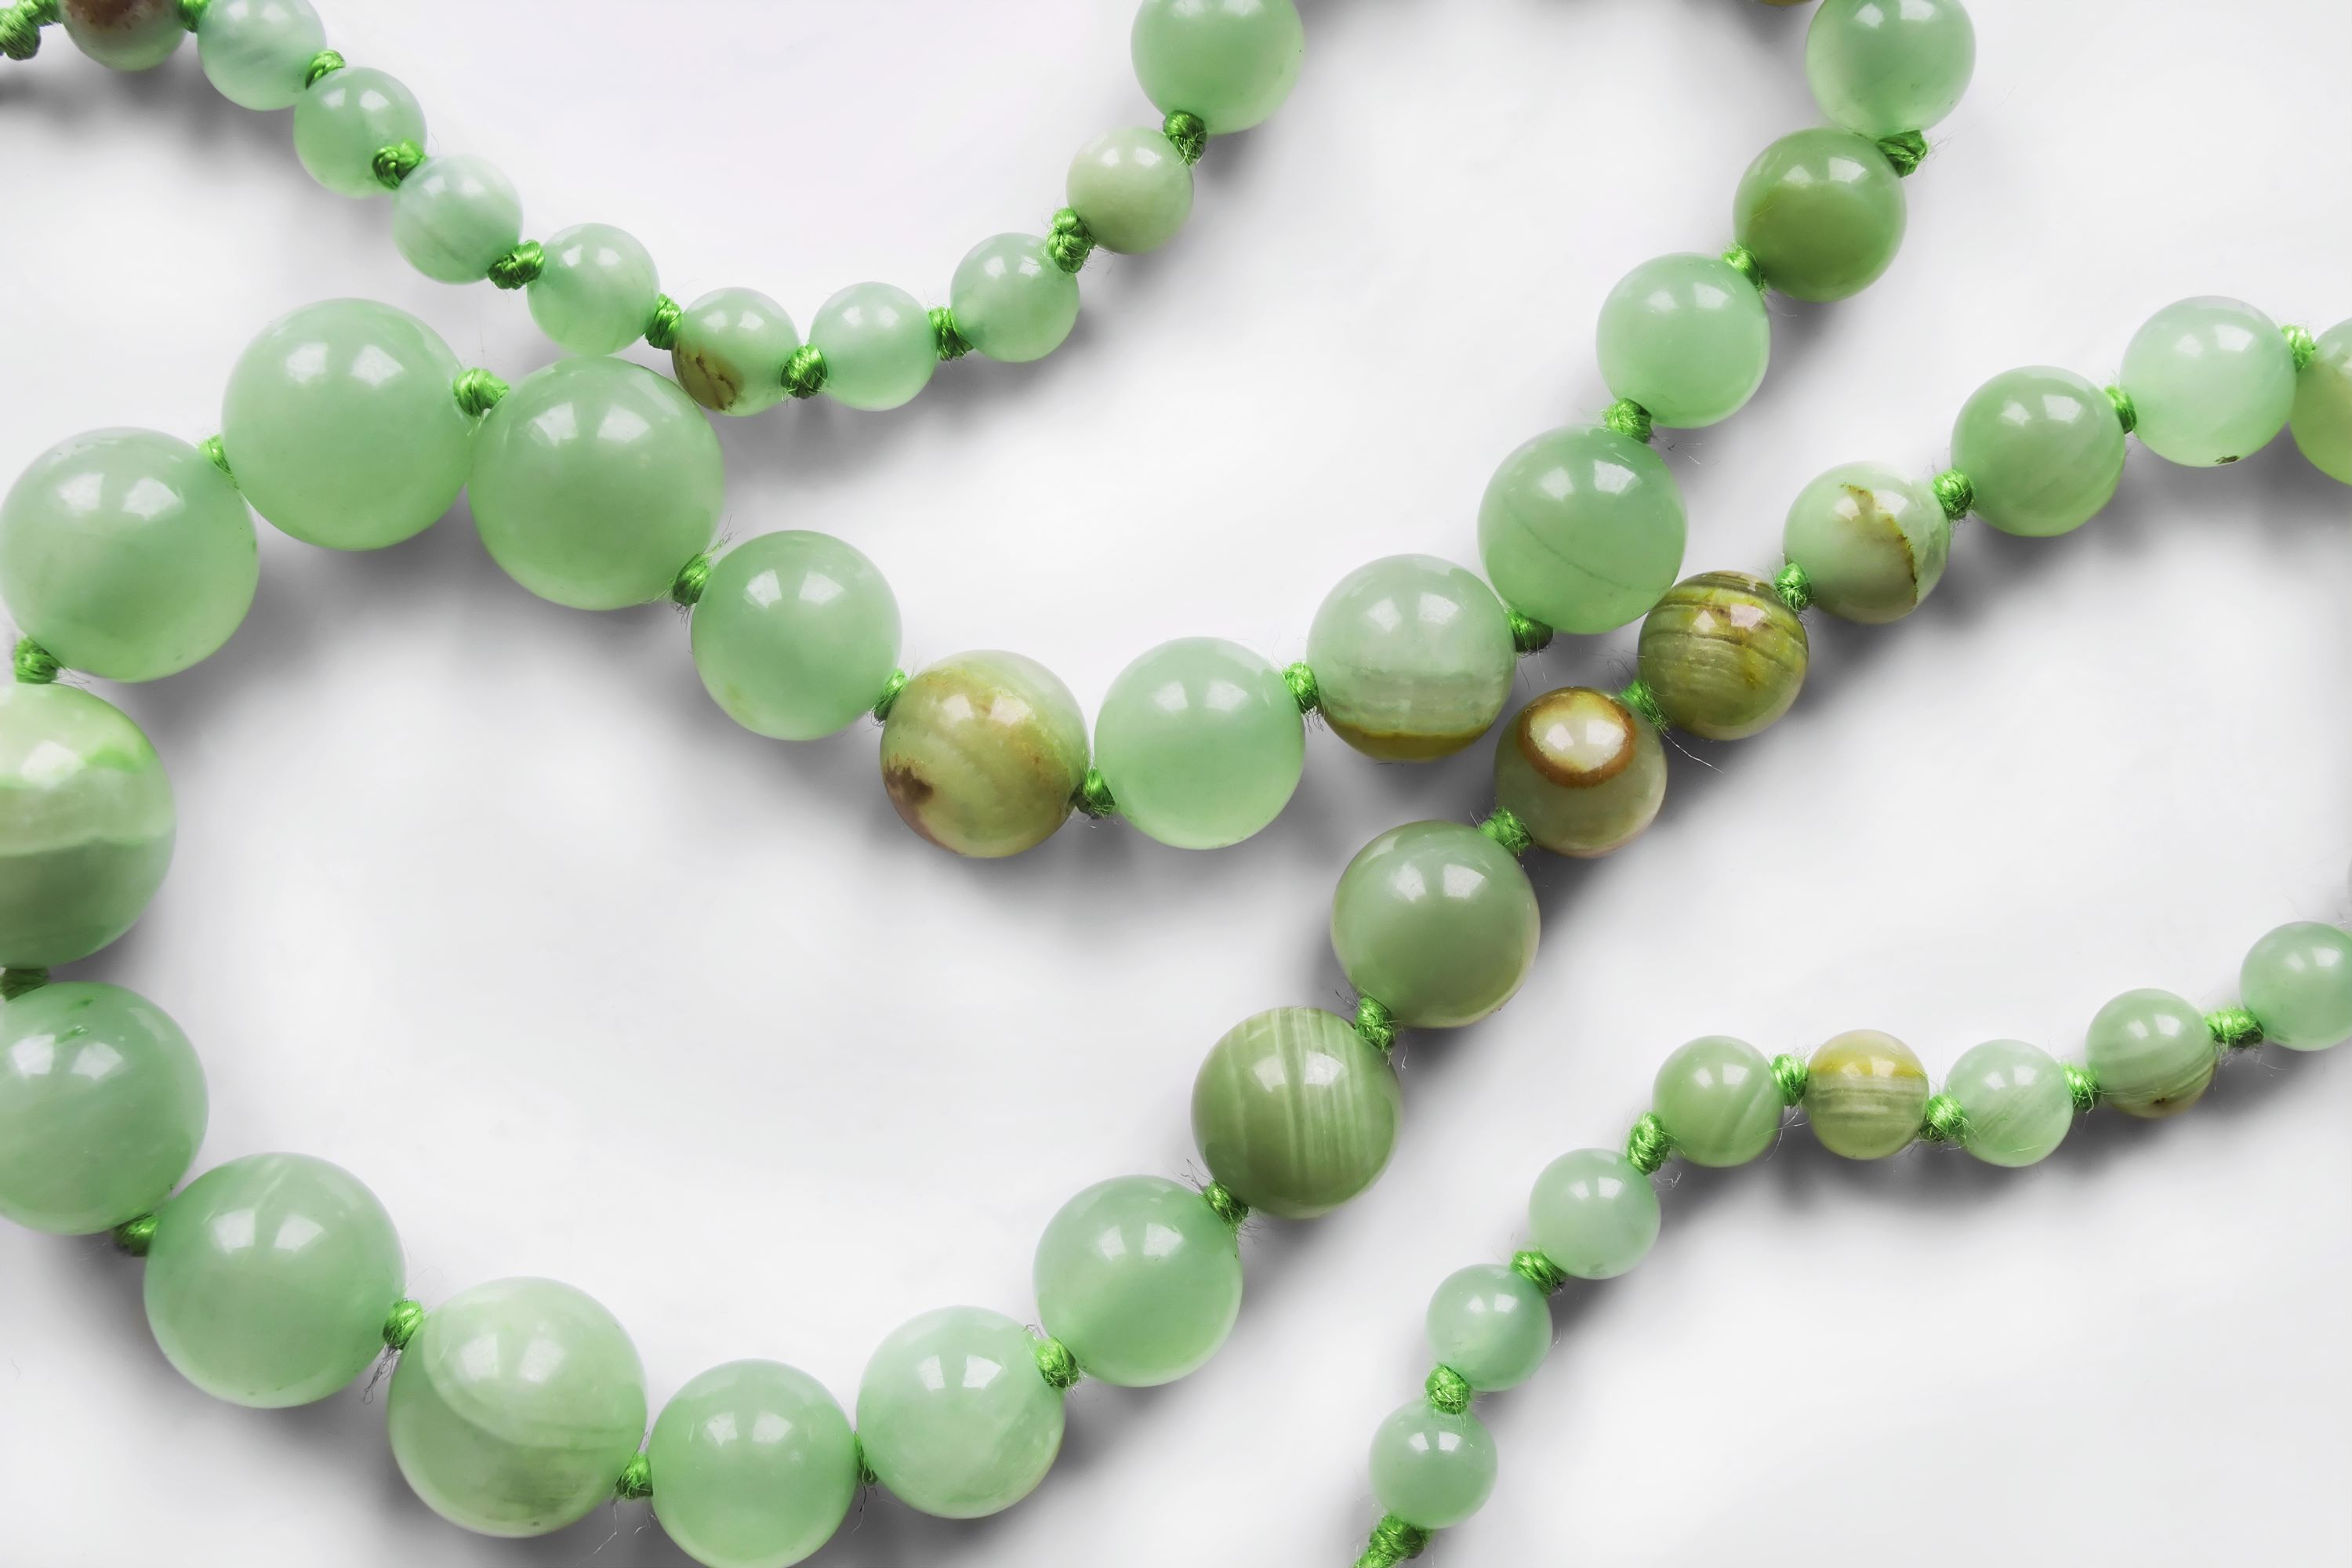 Necklace from green jade stones